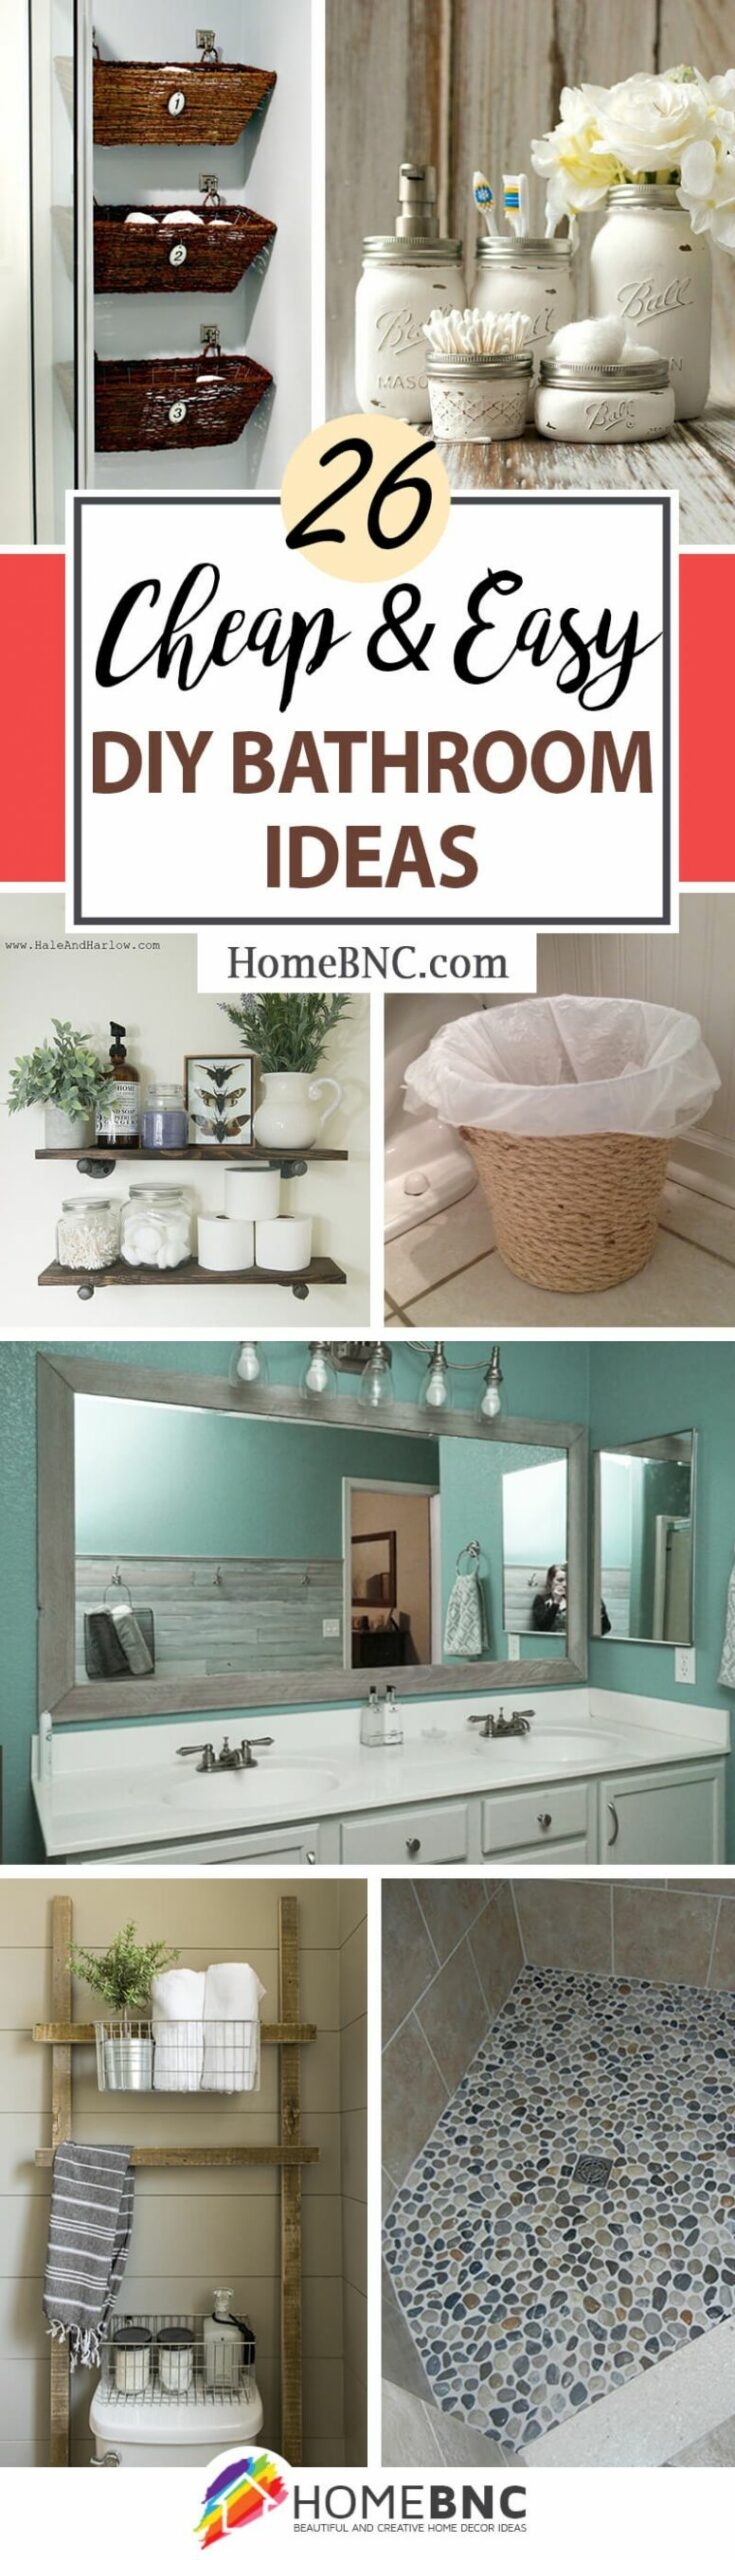 8 Best DIY Bathroom Ideas and Designs for 8